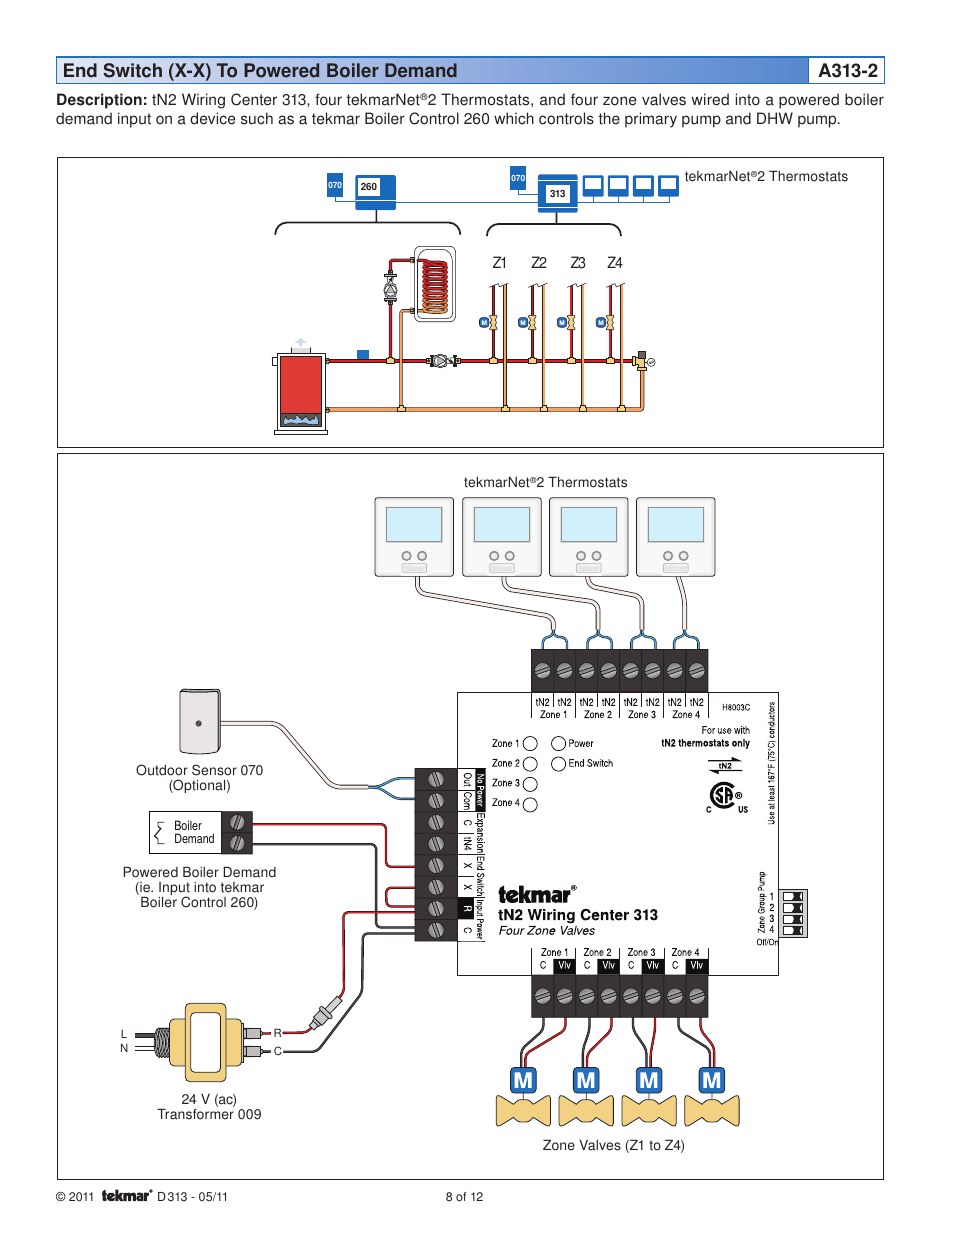 medium resolution of end switch x x to powered boiler demand a313 2 tekmar 313 tn2end switch x x to powered boiler demand a313 2 tekmar 313 tn2 wiring center installation